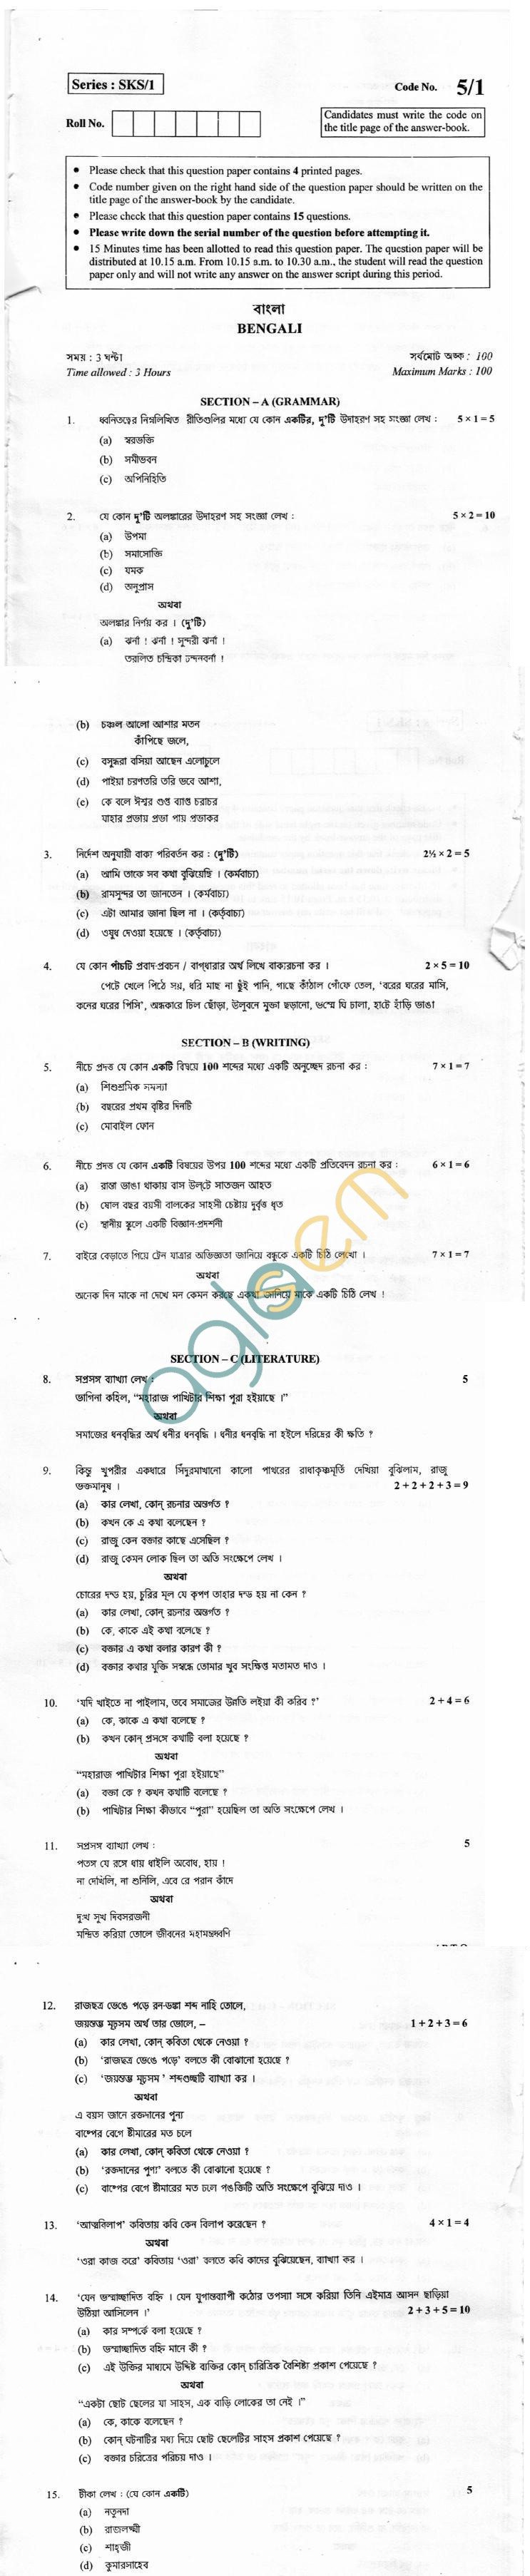 CBSE Board Exam 2013 Class XII Question Paper - Bengali